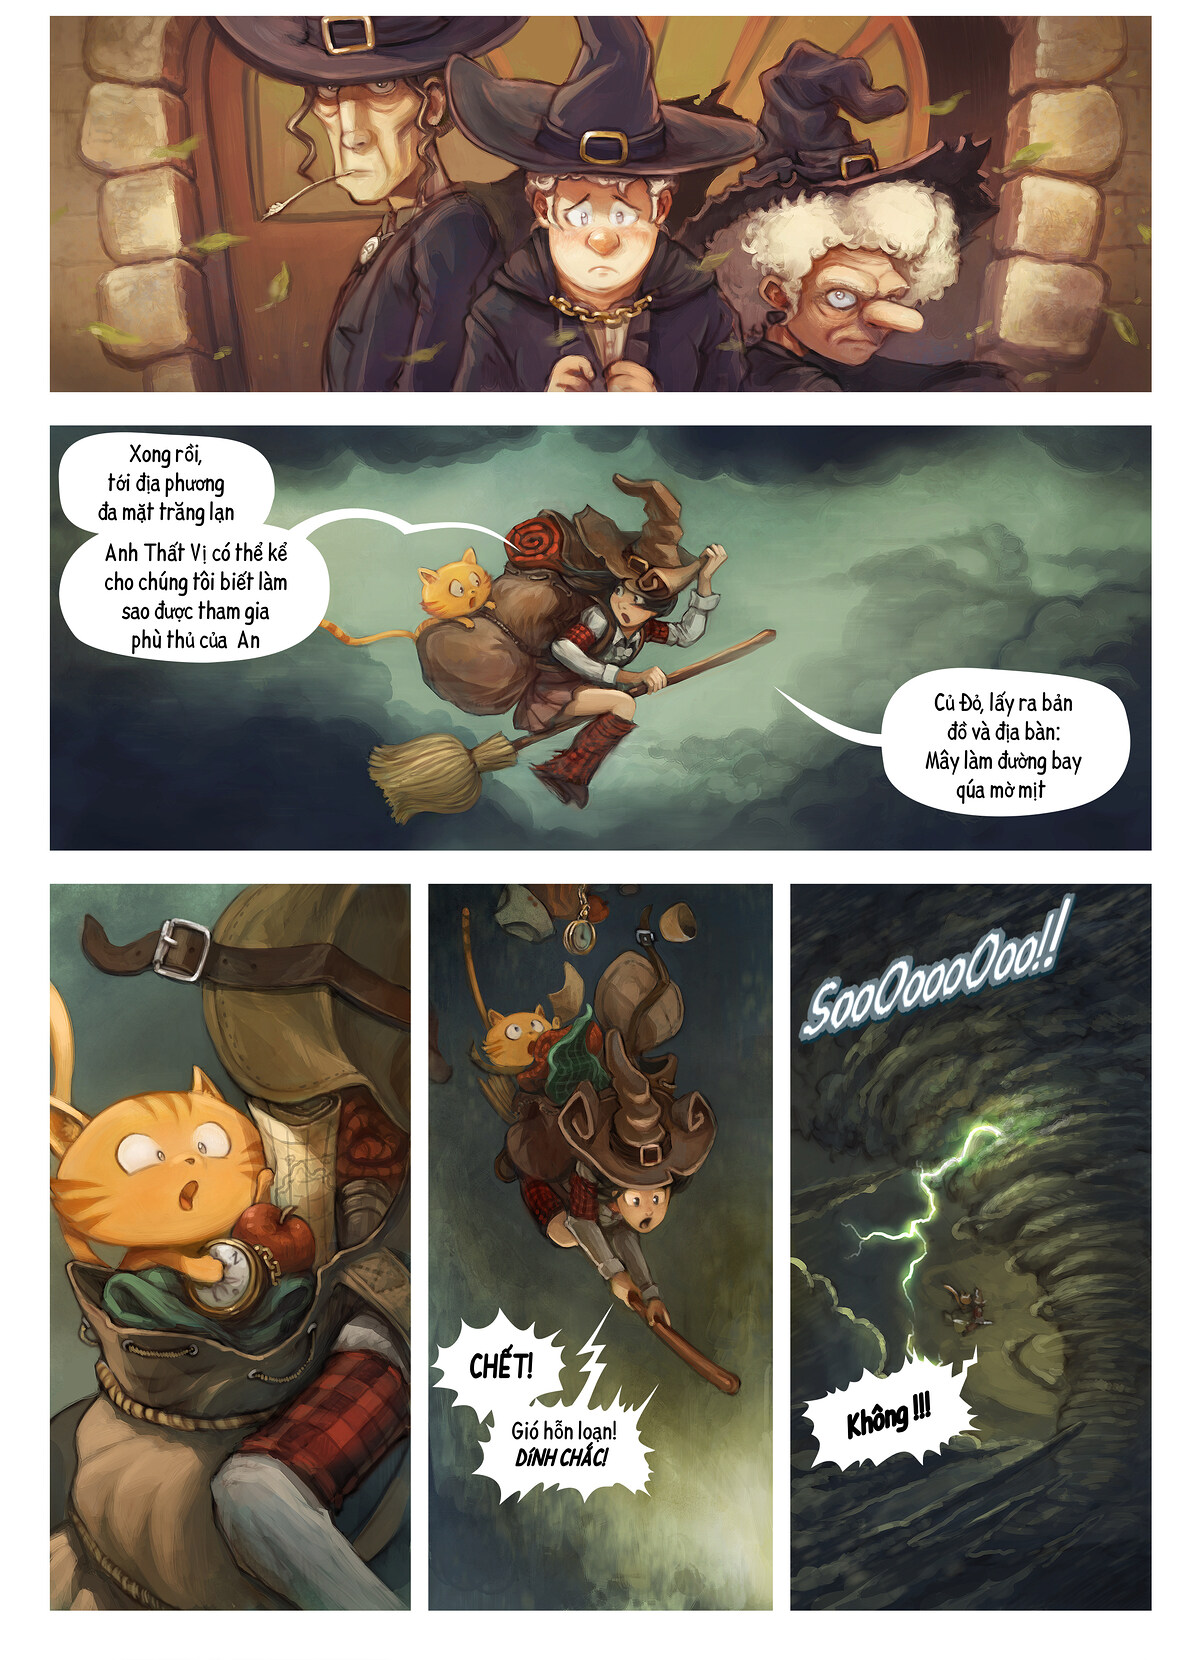 A webcomic page of Pepper&Carrot, Tập 17 [vi], trang 2